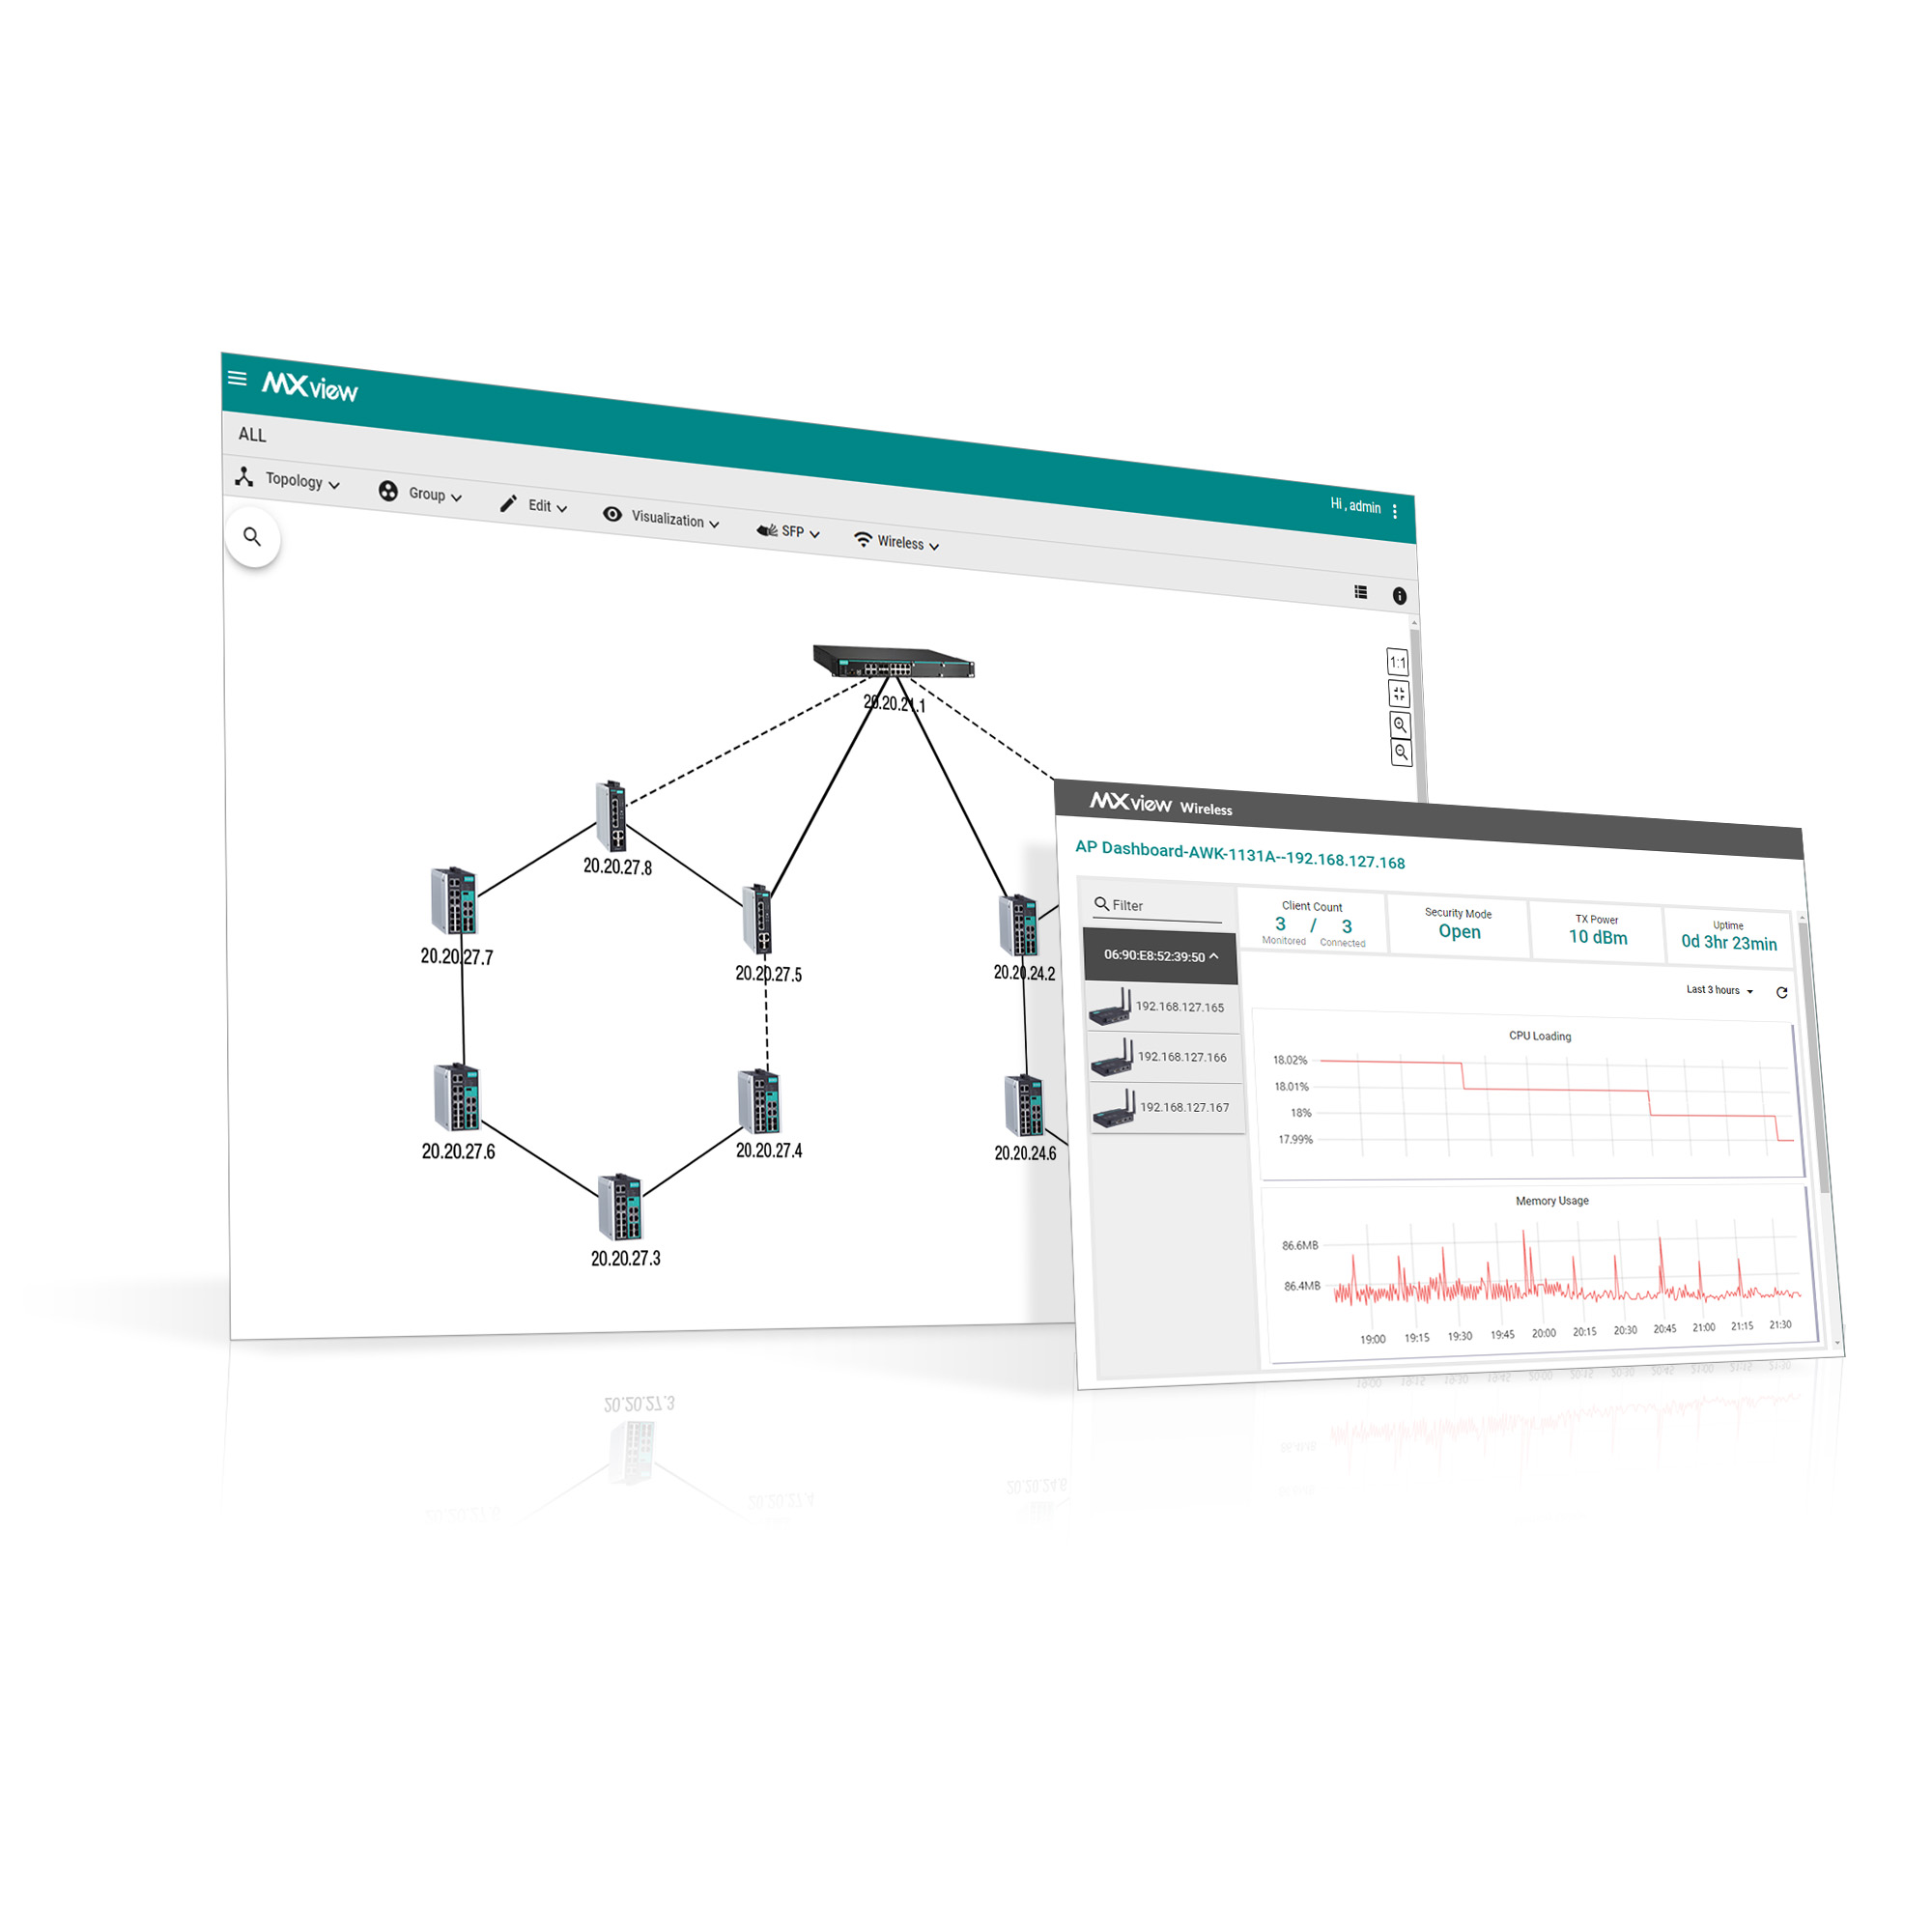 MXview Series - Network Management Software | MOXA